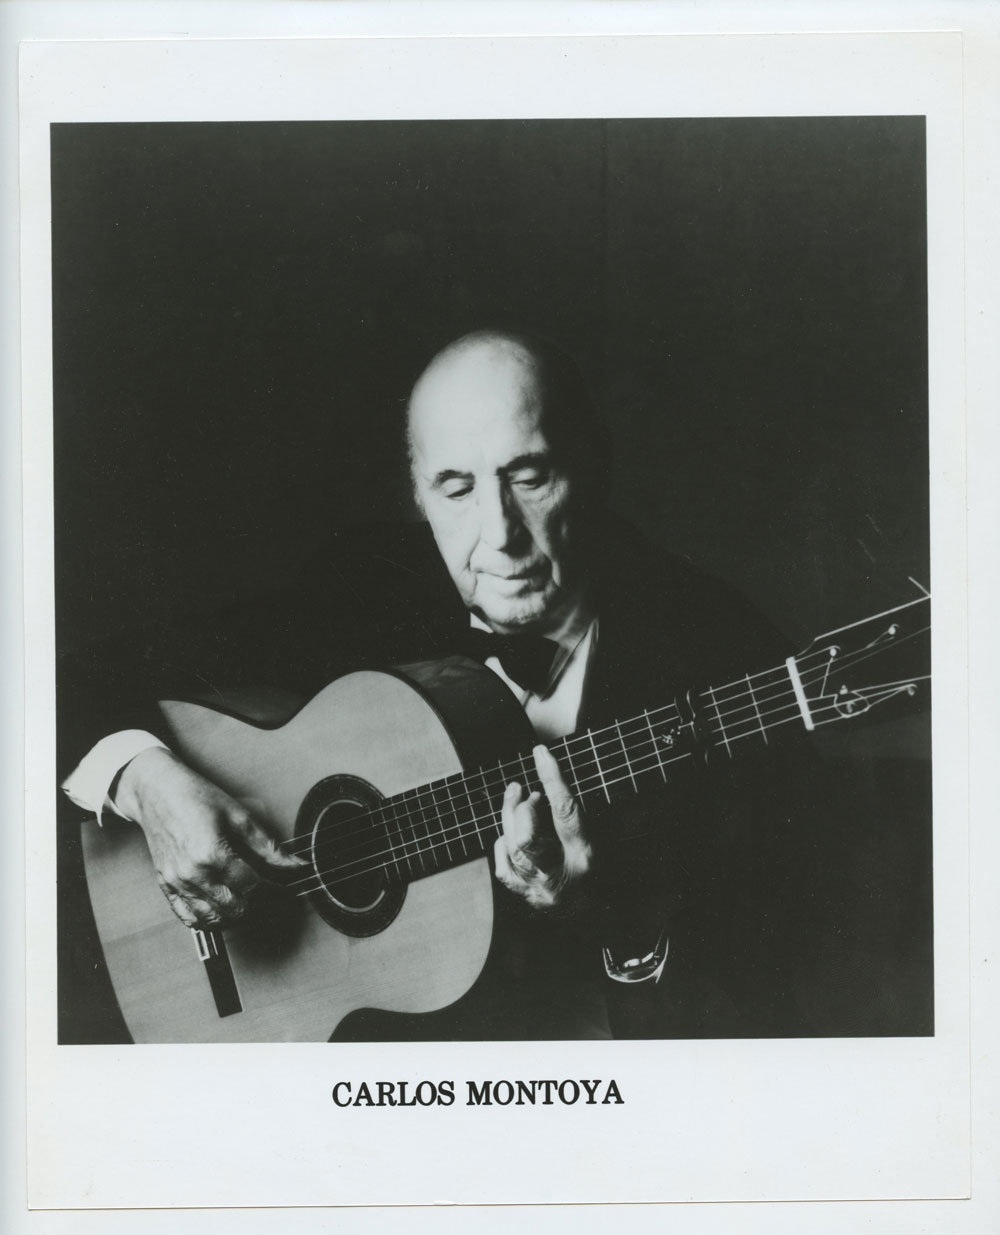 Carlos Montoya Photo 1960 Publicity Promo RCA Records